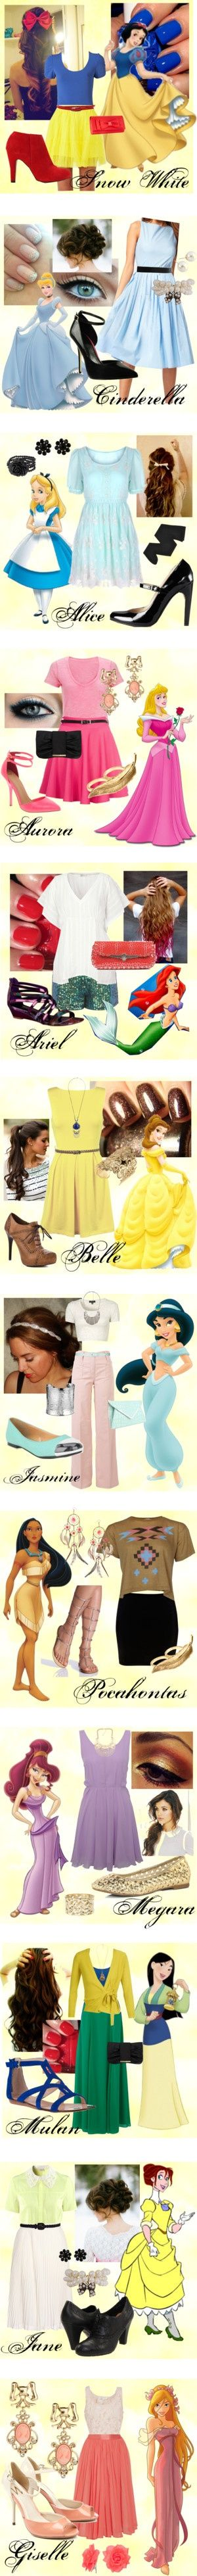 best images about disney bound on pinterest disney the